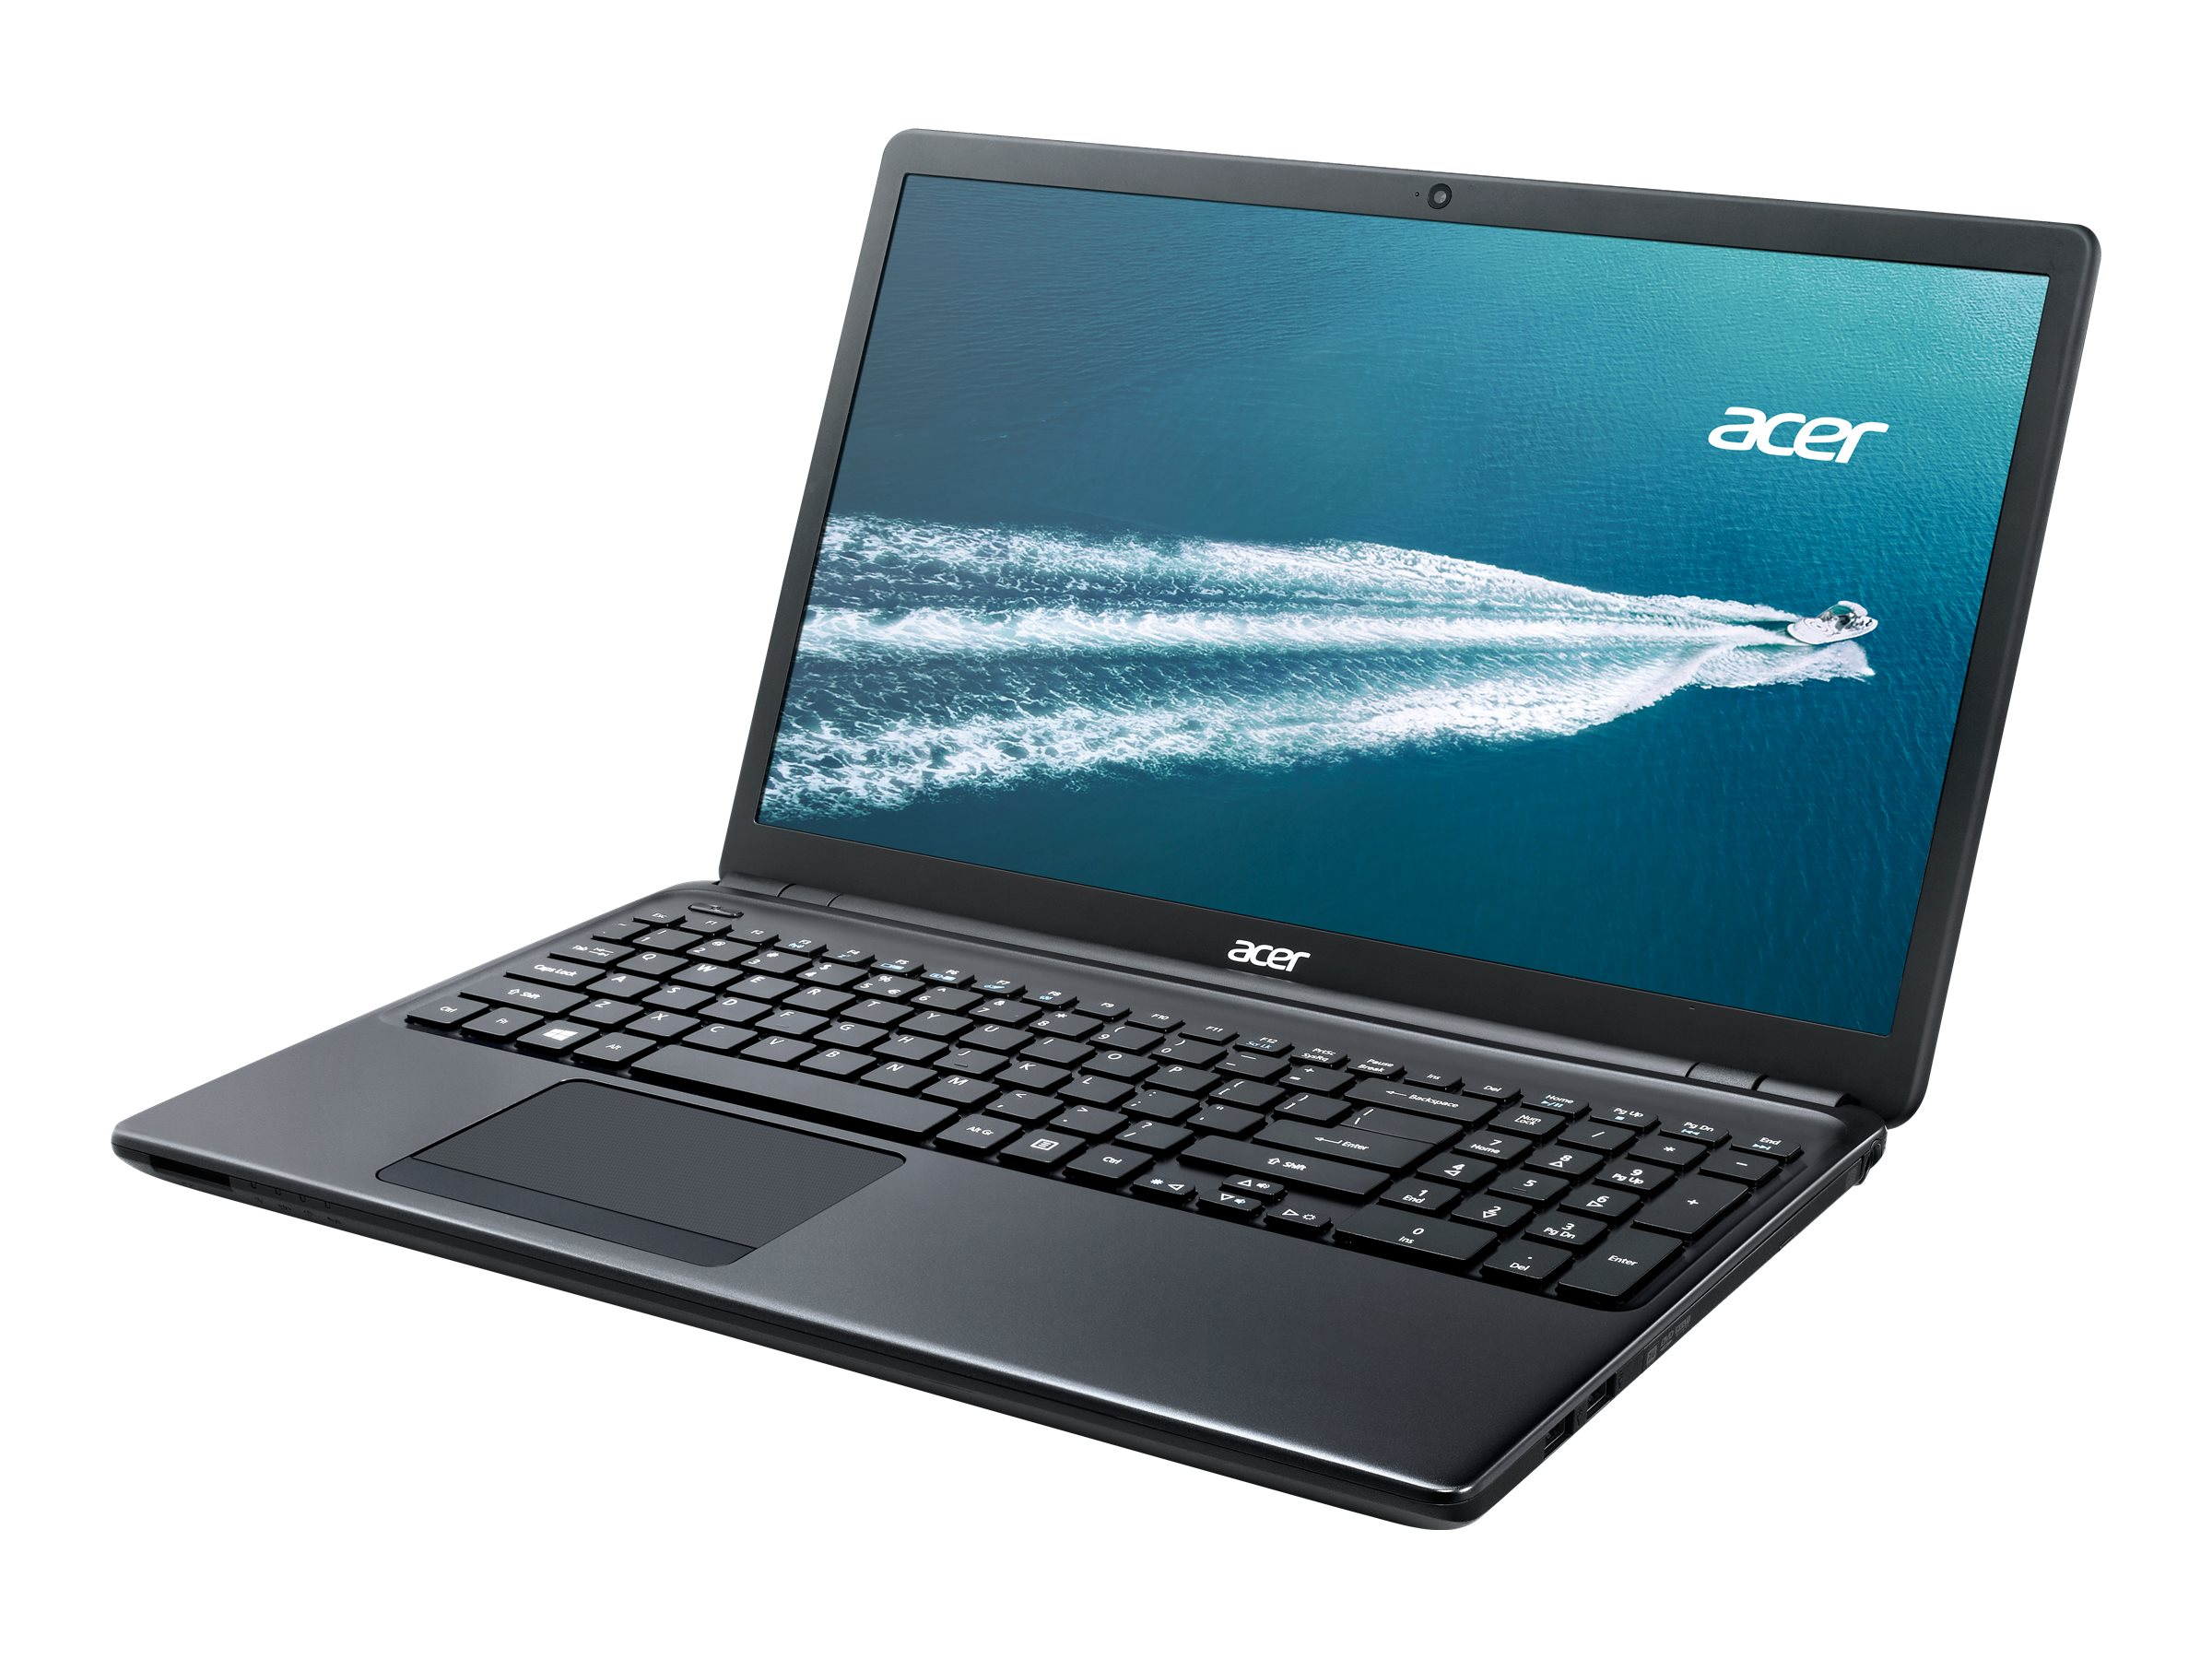 Acer TravelMate P255-MP-5836 1.7GHz Core i5 15.6in display, NX.V98AA.003, 18508689, Notebooks